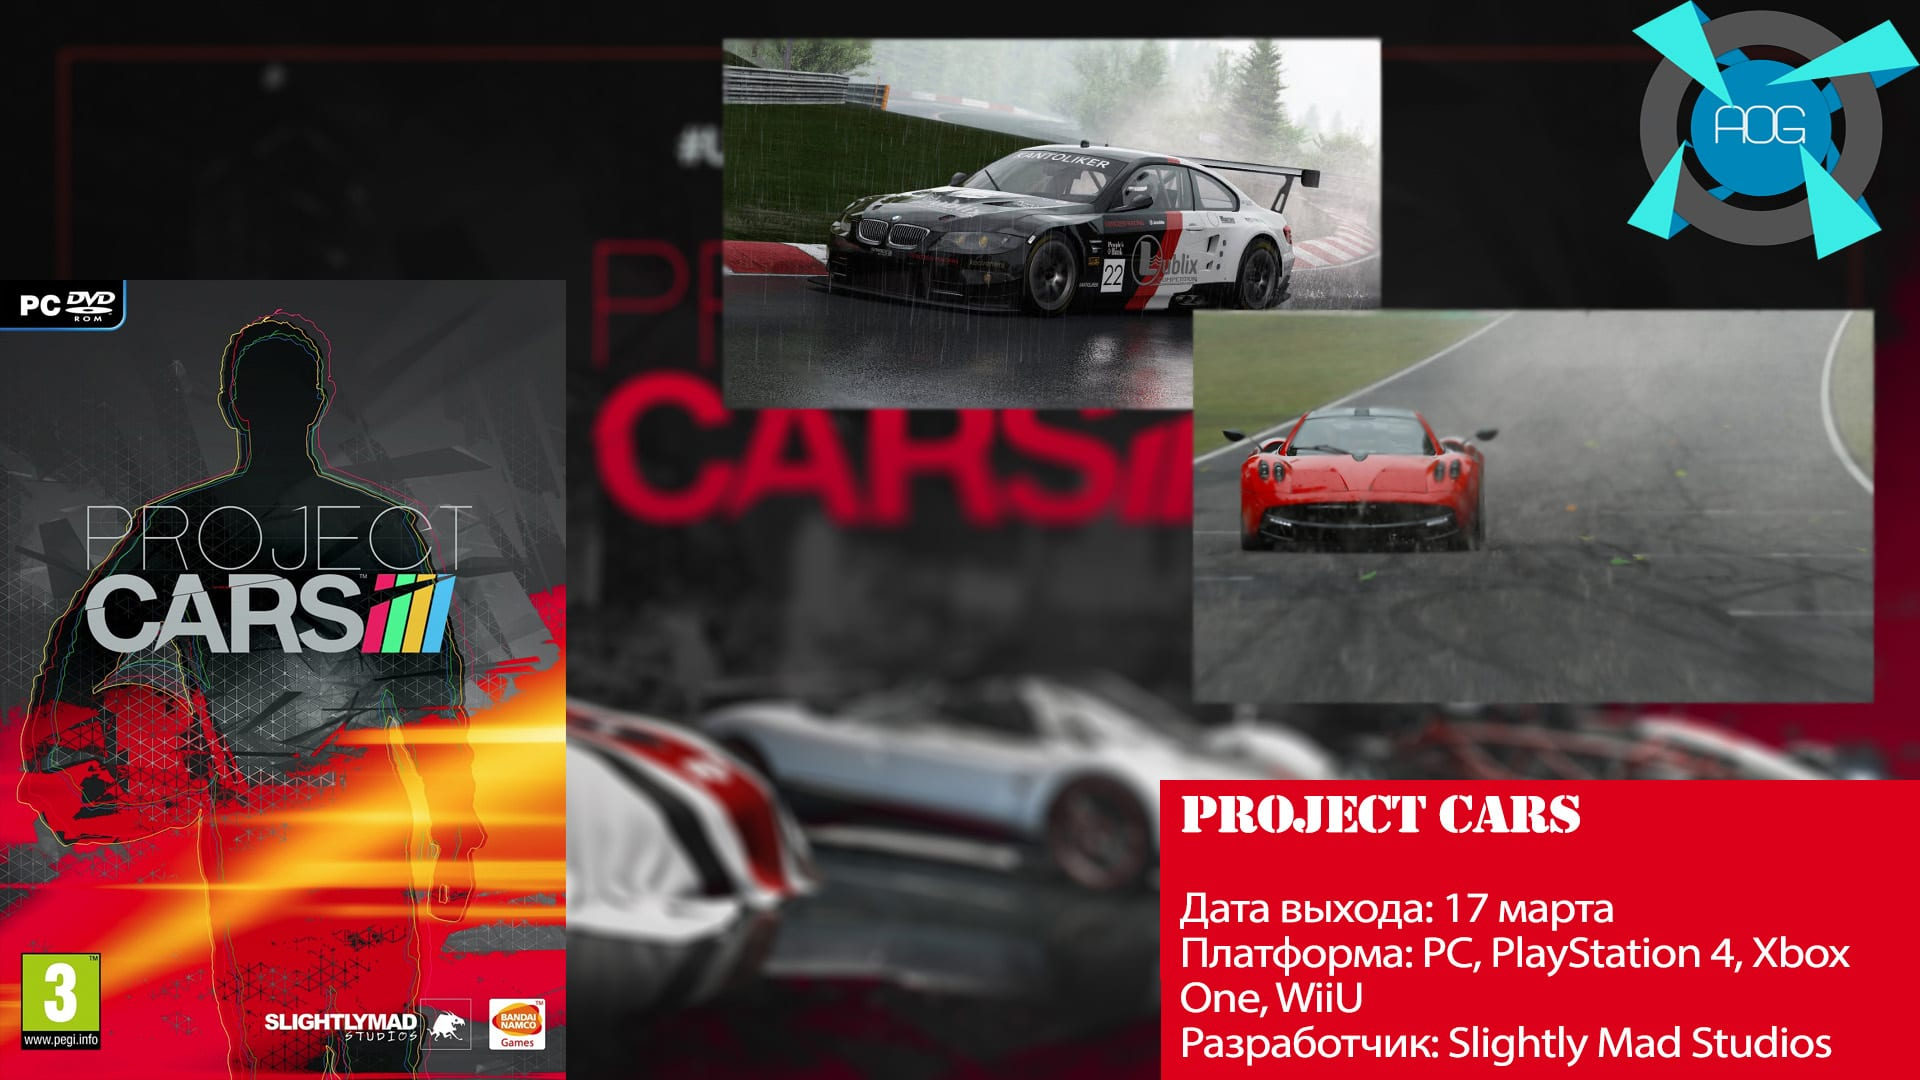 projectcars-graphik-relizov-2015-march